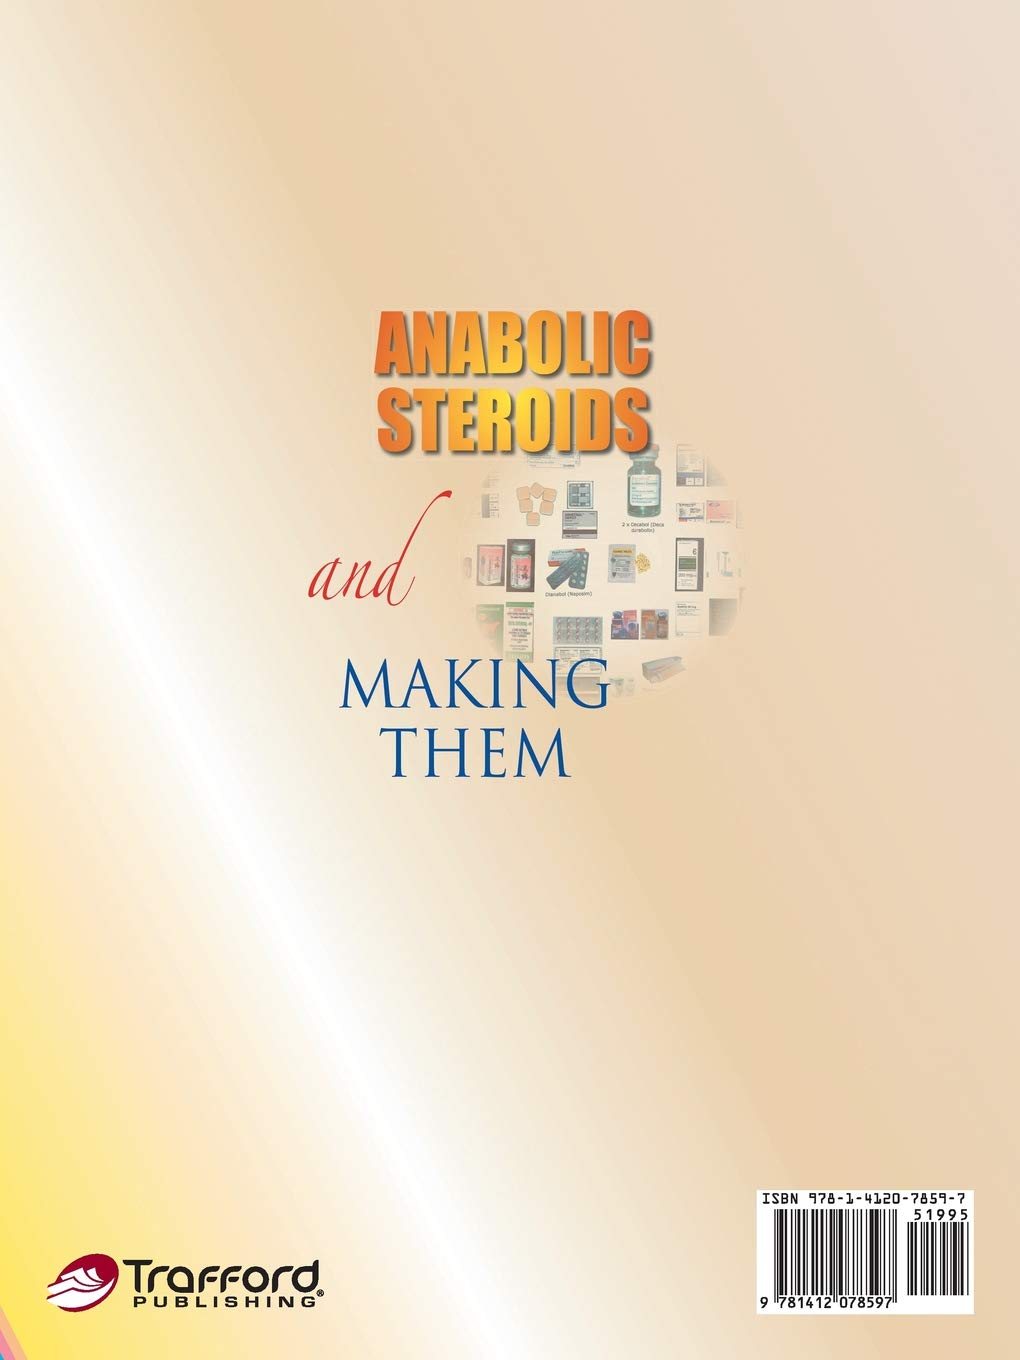 Anabolic Steroids and Making Them: Professor Frank: 9781412078597